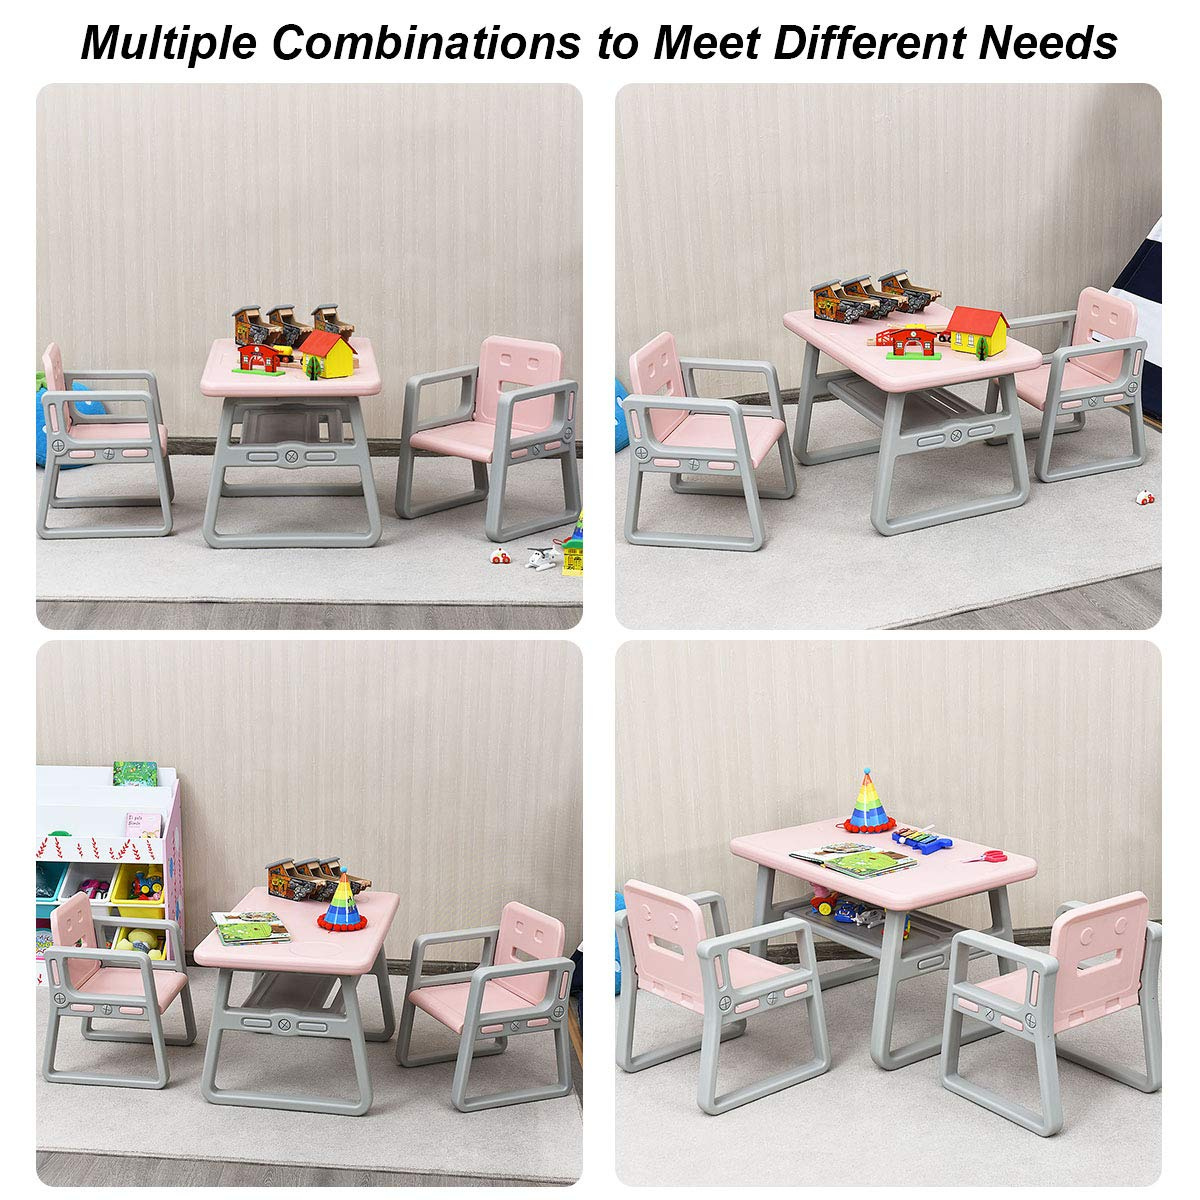 Costzon 3 Piece Kids Table and 2 Chairs Set, Learning Activity Play Table, Baby Dining Table, Children Desk Chair for 1-3 Years, Kids Furniture Set (Pink) by Costzon (Image #8)